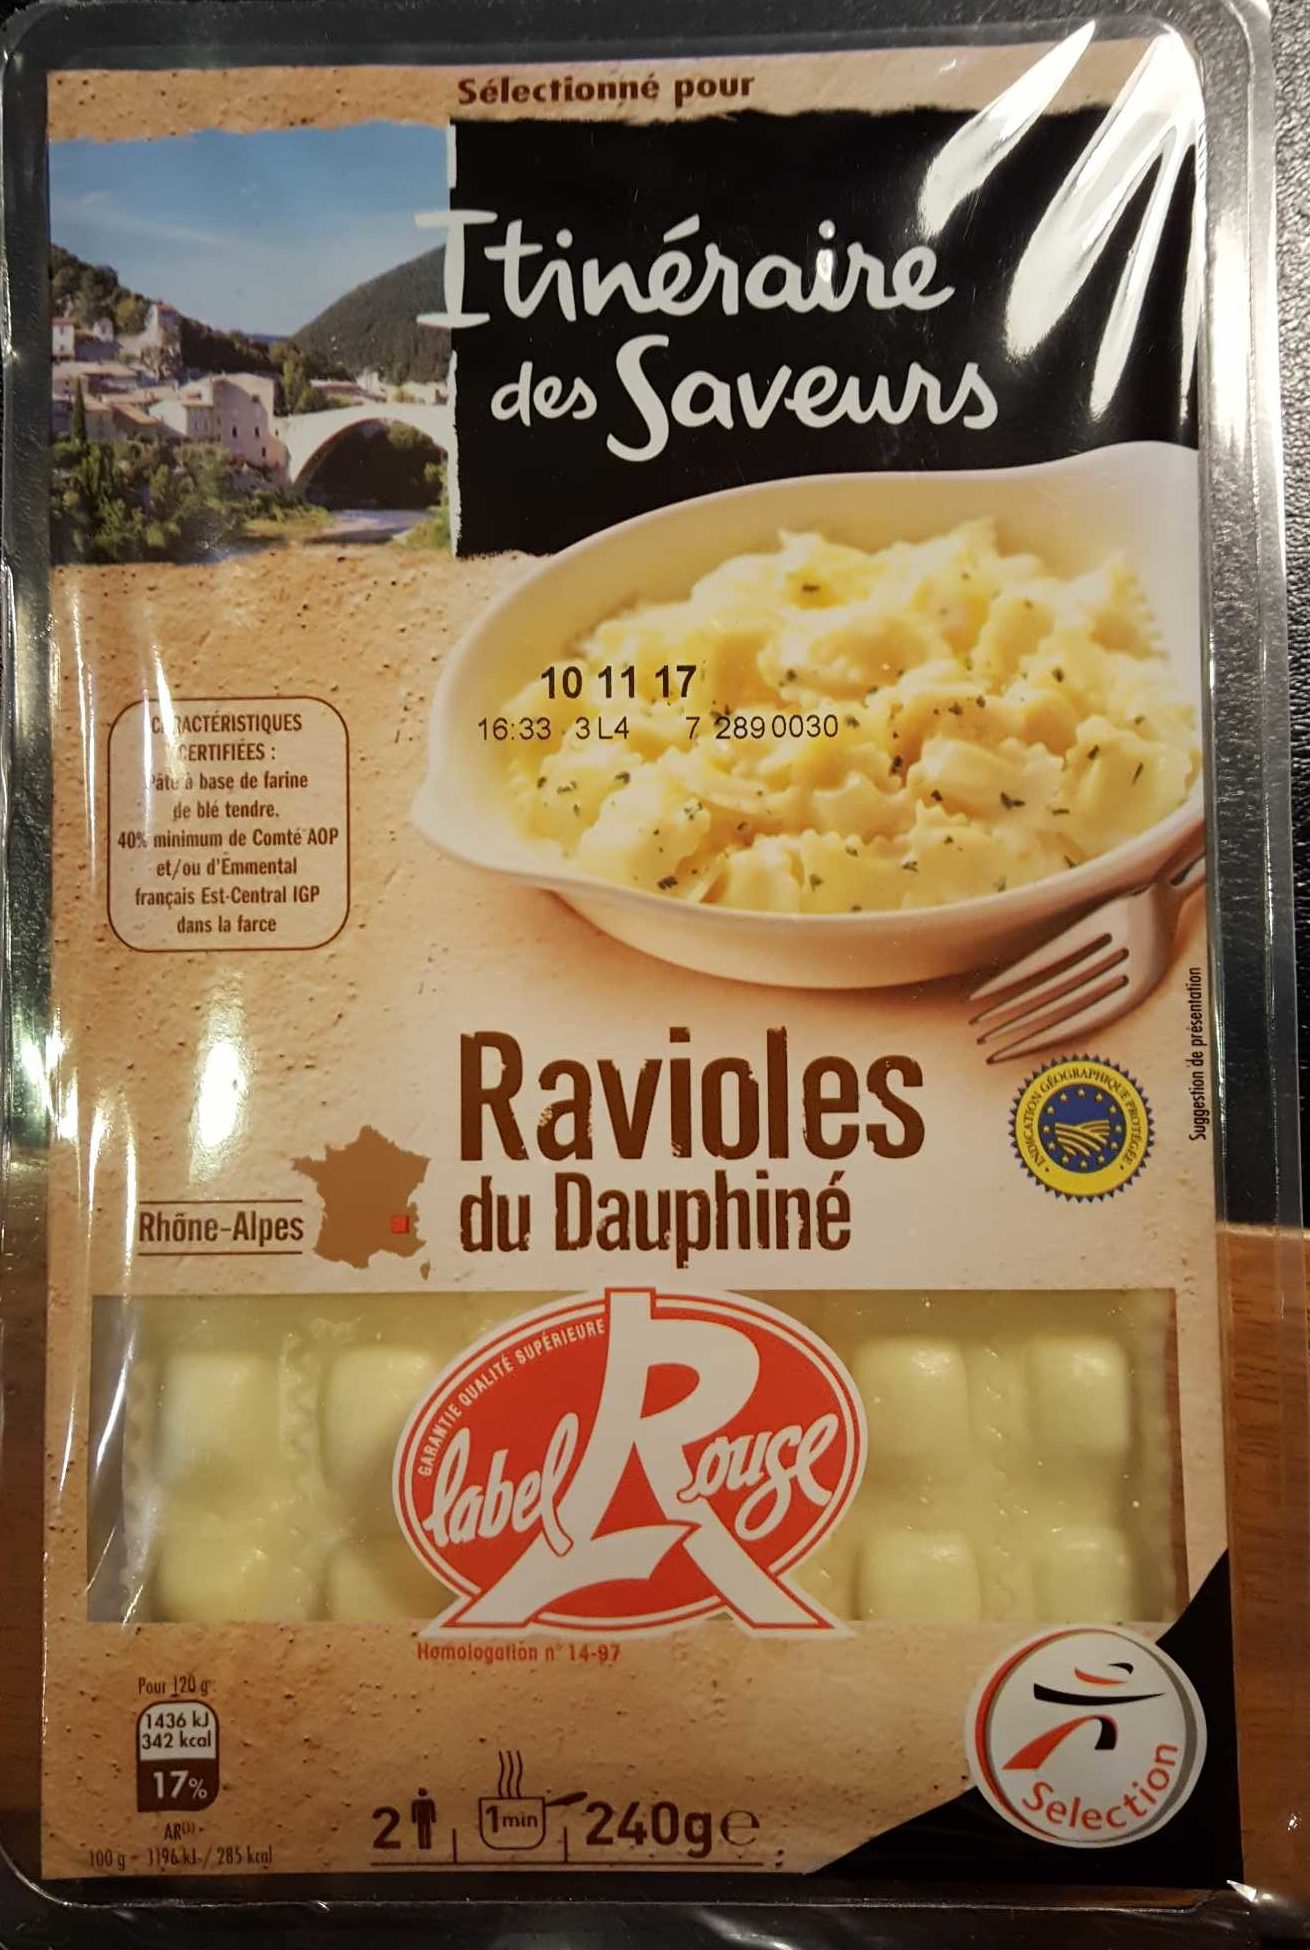 Ravioles du Dauphiné IGP label Rouge - Product